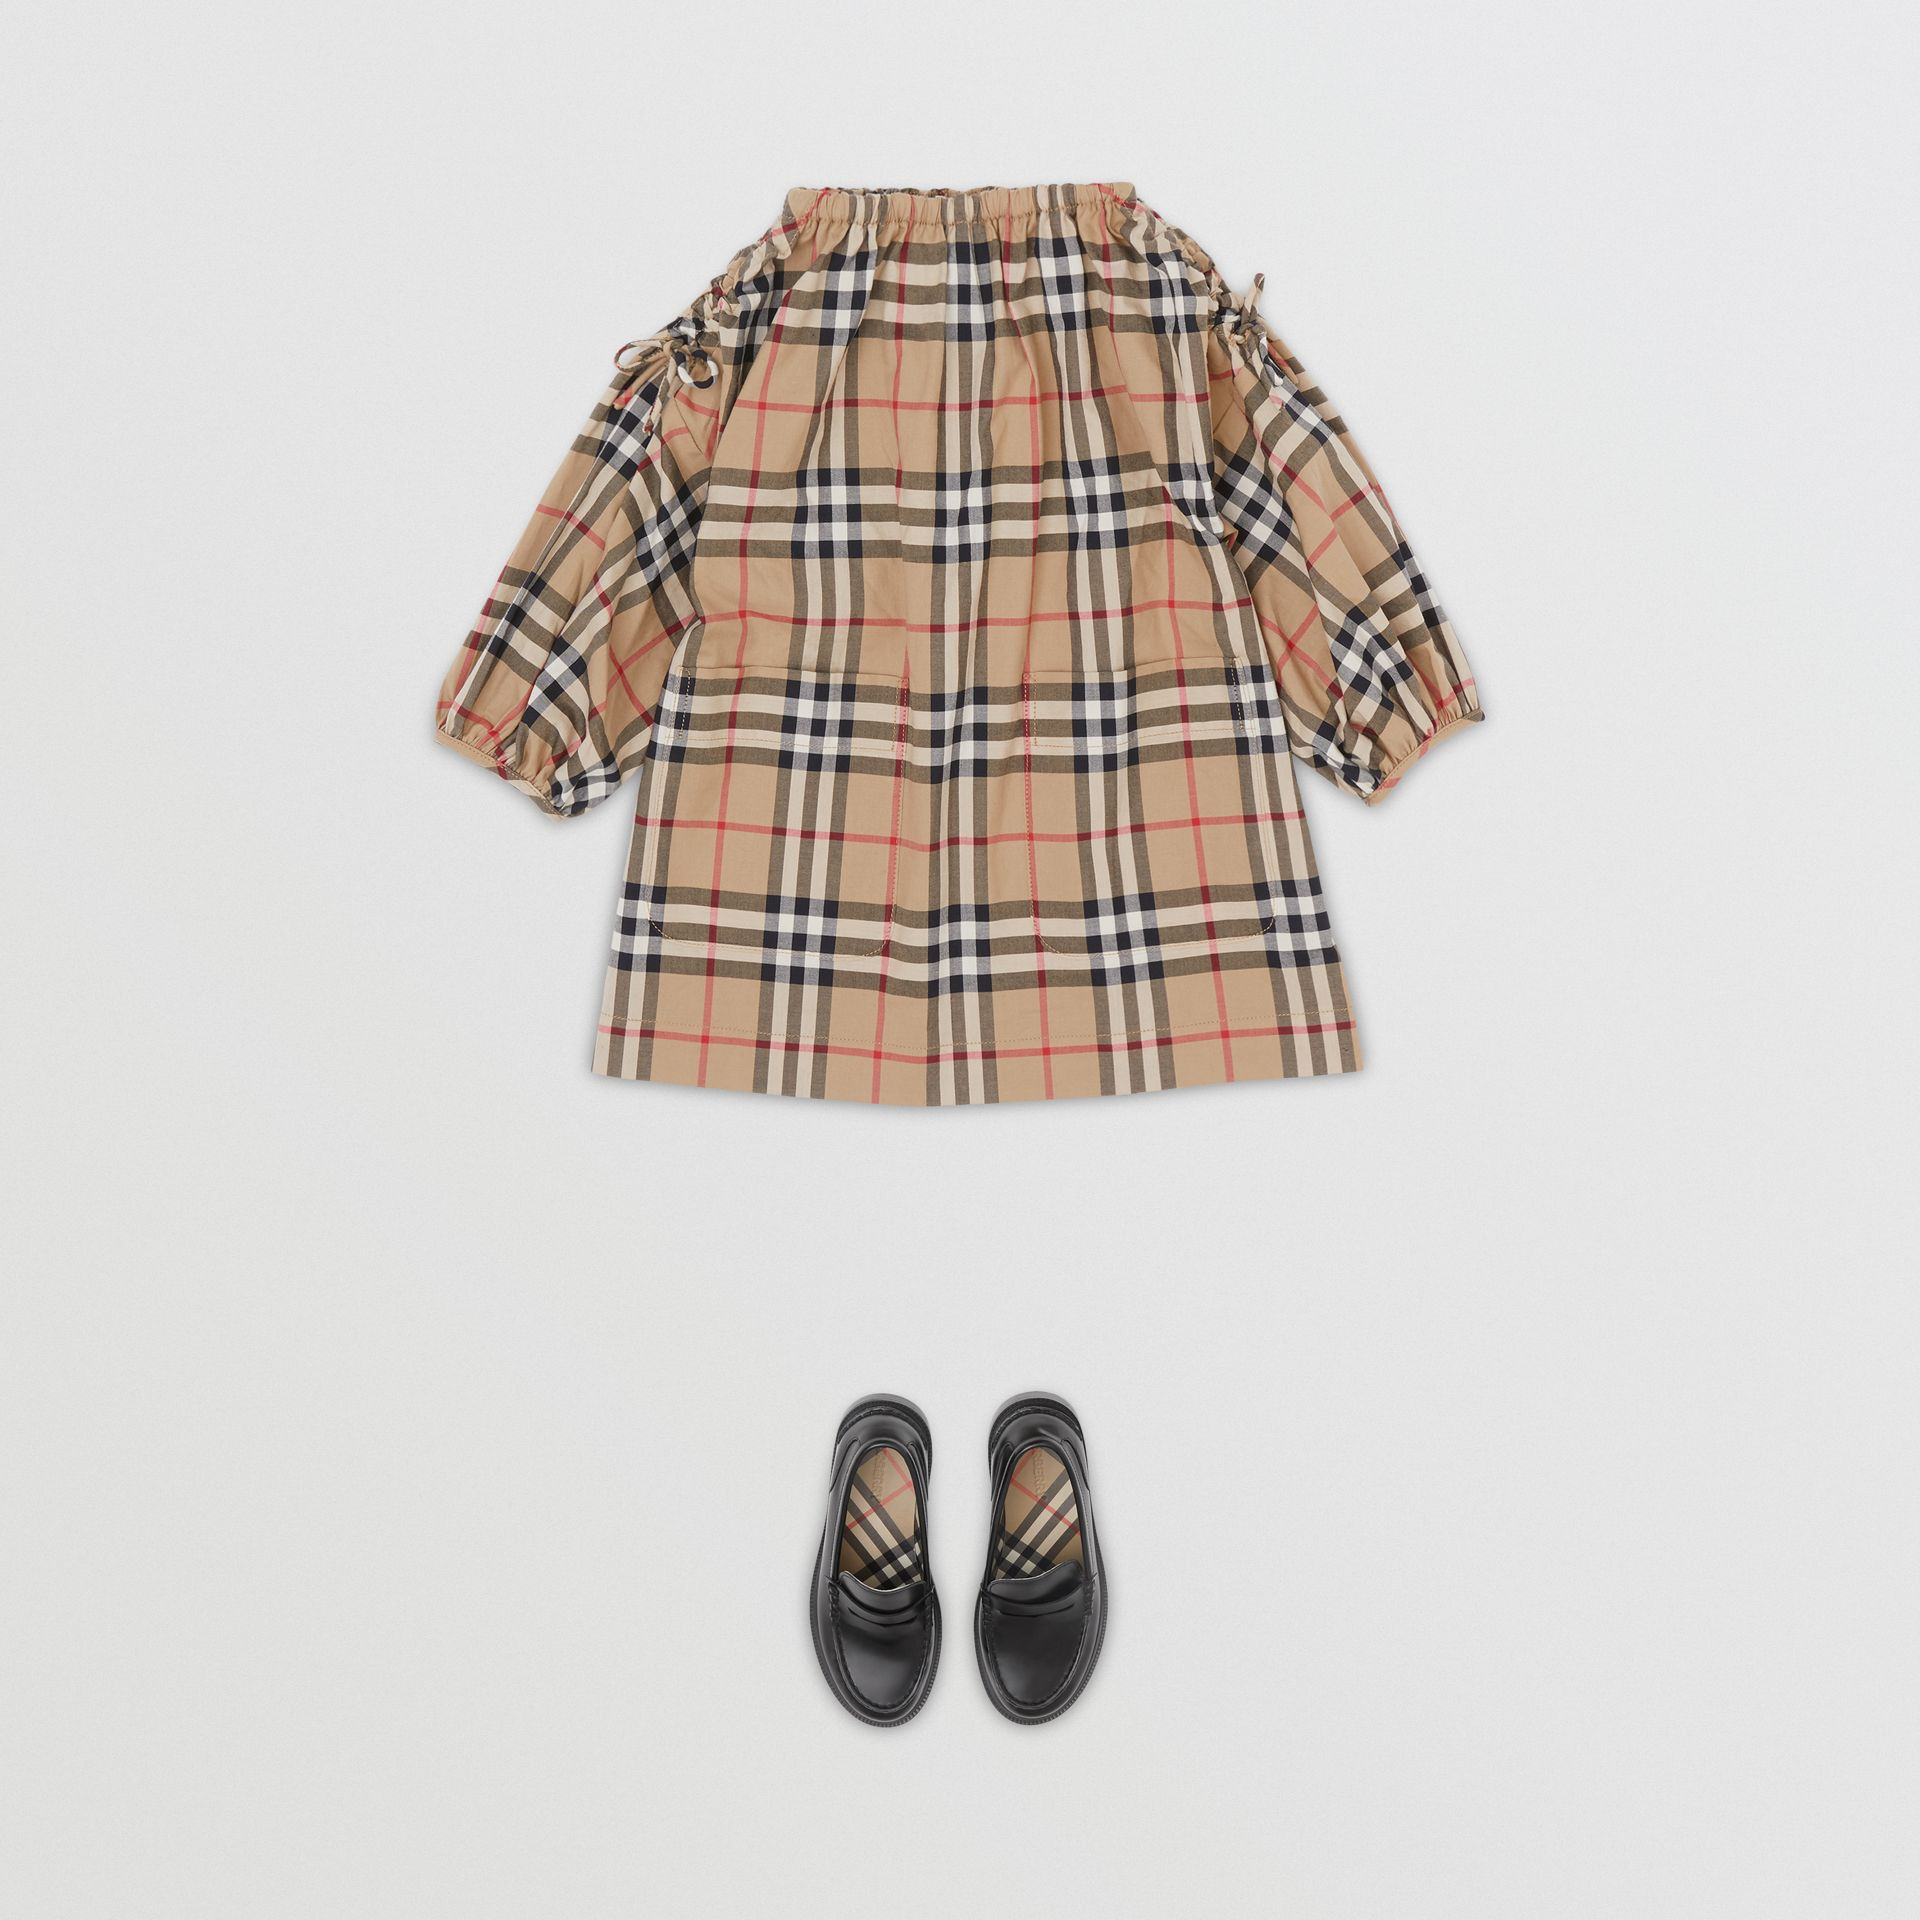 Gathered Sleeve Vintage Check Cotton Dress in Archive Beige - Children | Burberry - gallery image 2